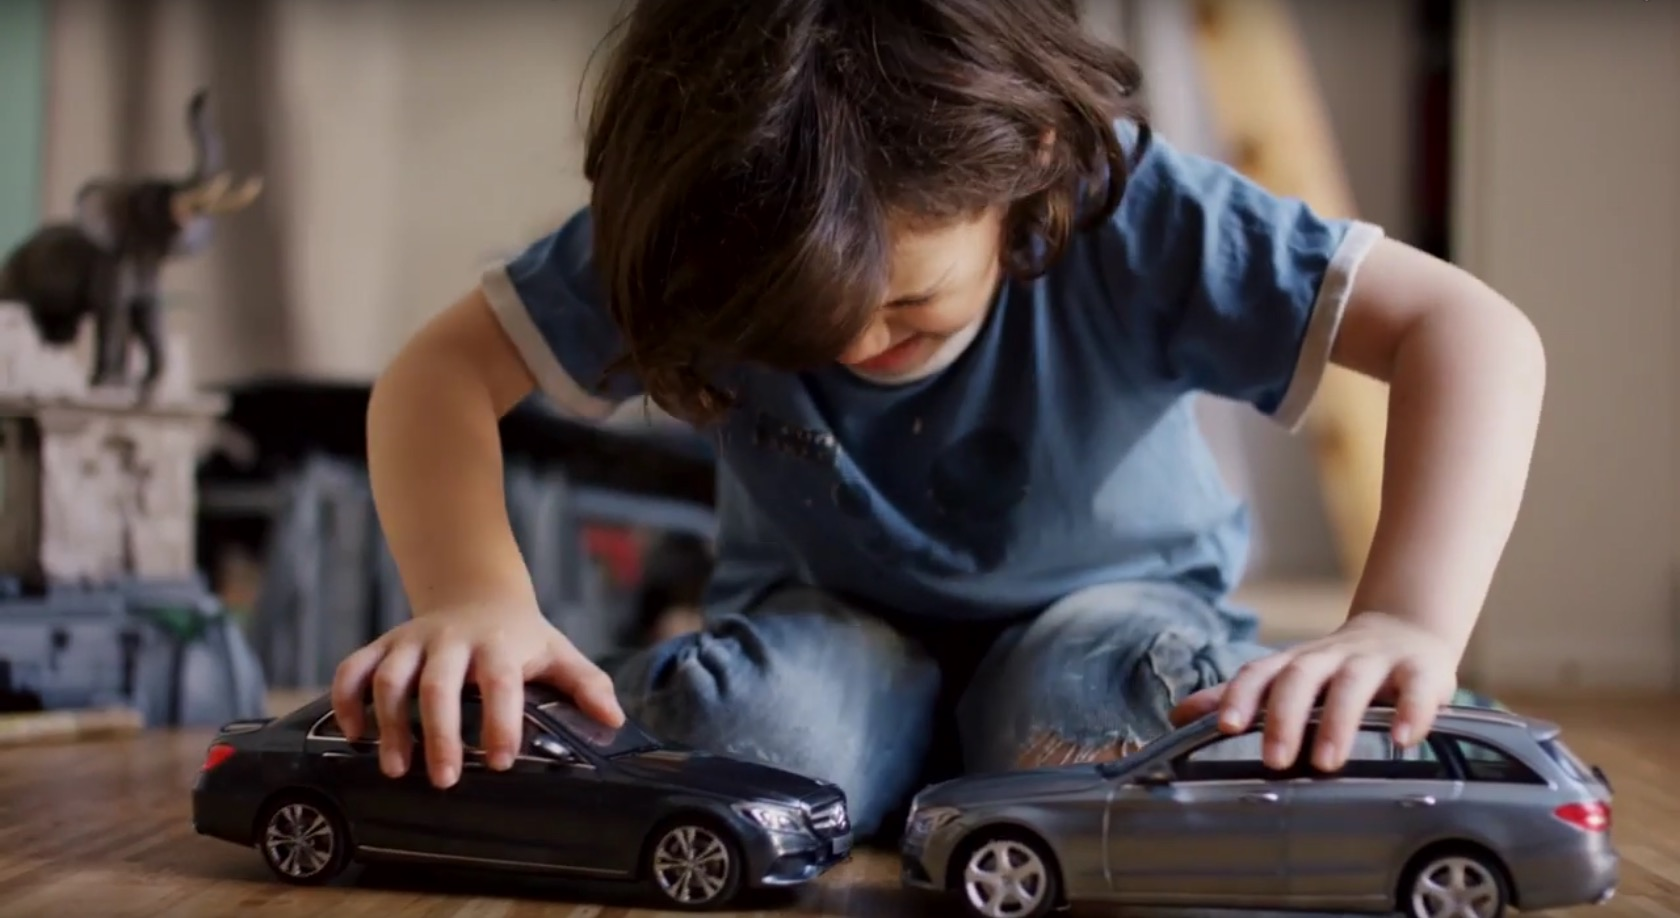 Mercedes Benz Gave Uncrashable Toy Cars To Kids And Their Reaction